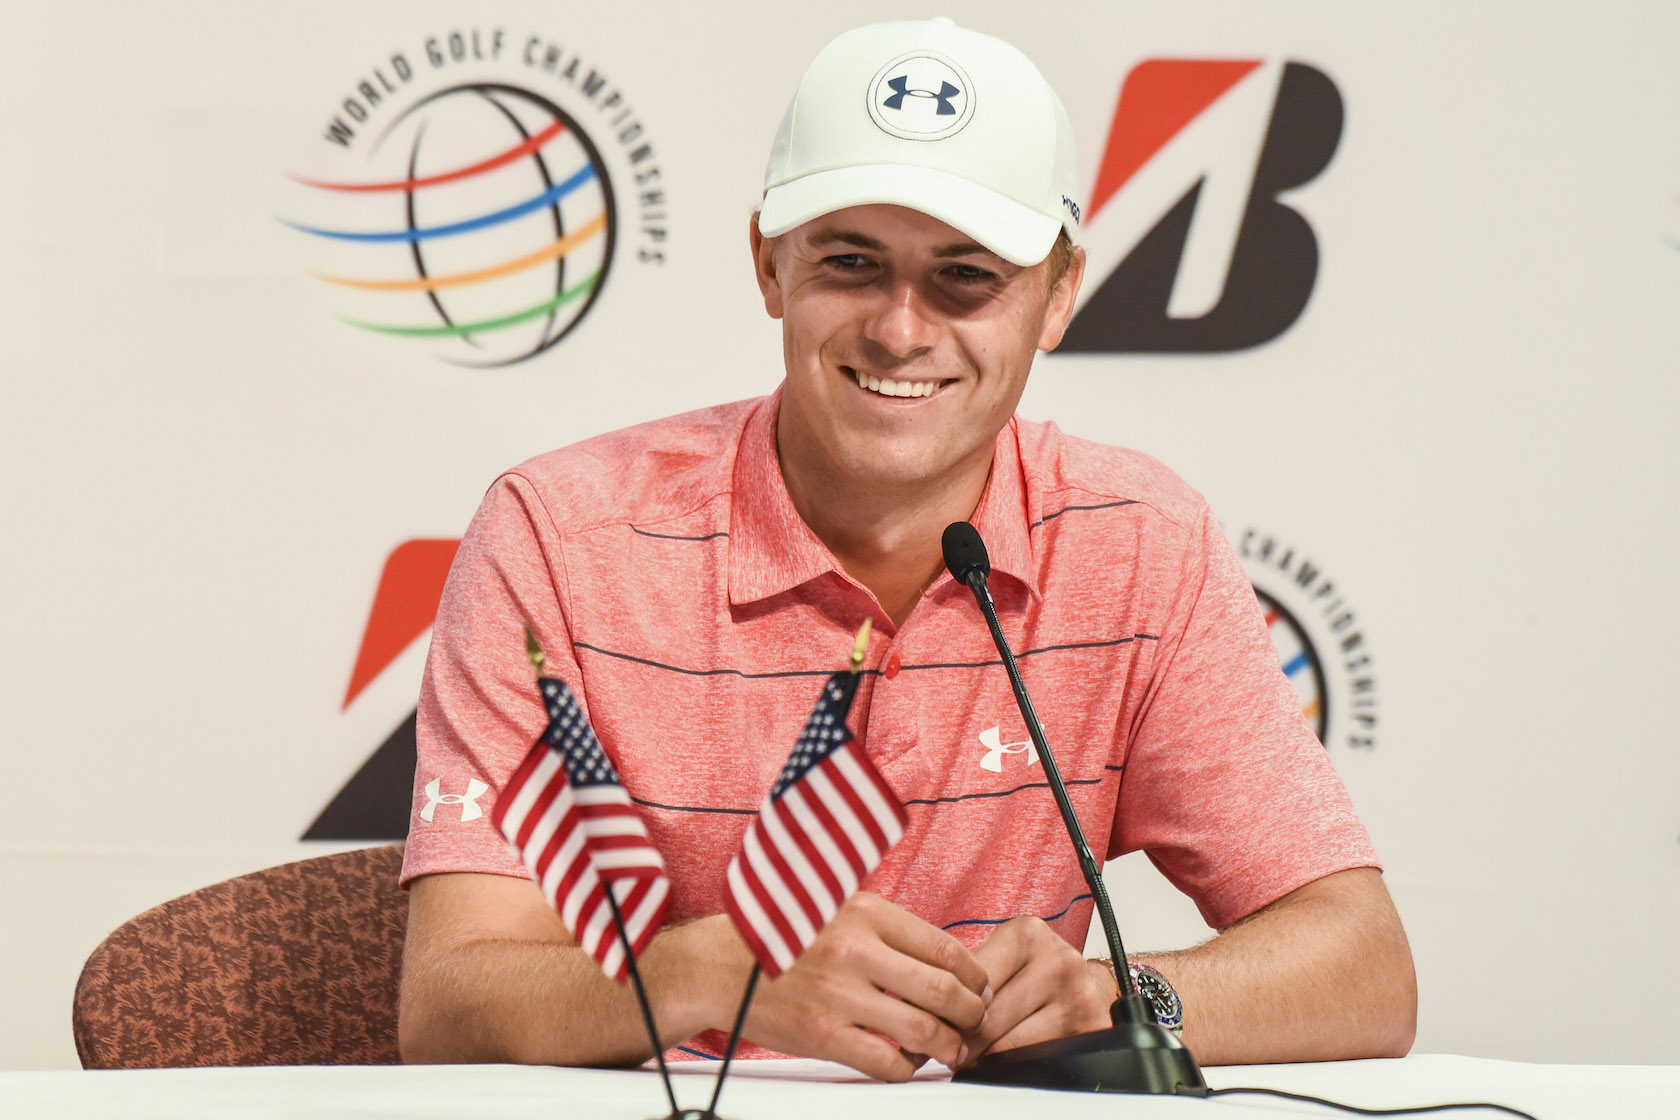 2017 WGC Bridgestone Invitational: Press Conference